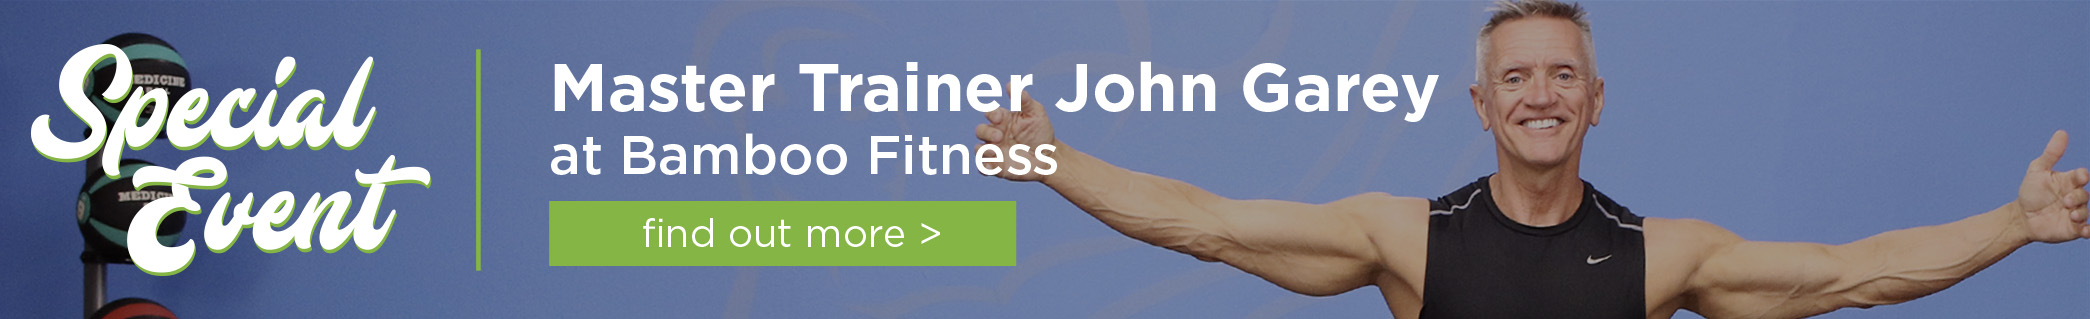 Special Event - Master Trainer John Garey at Bamboo Fitness - find out more